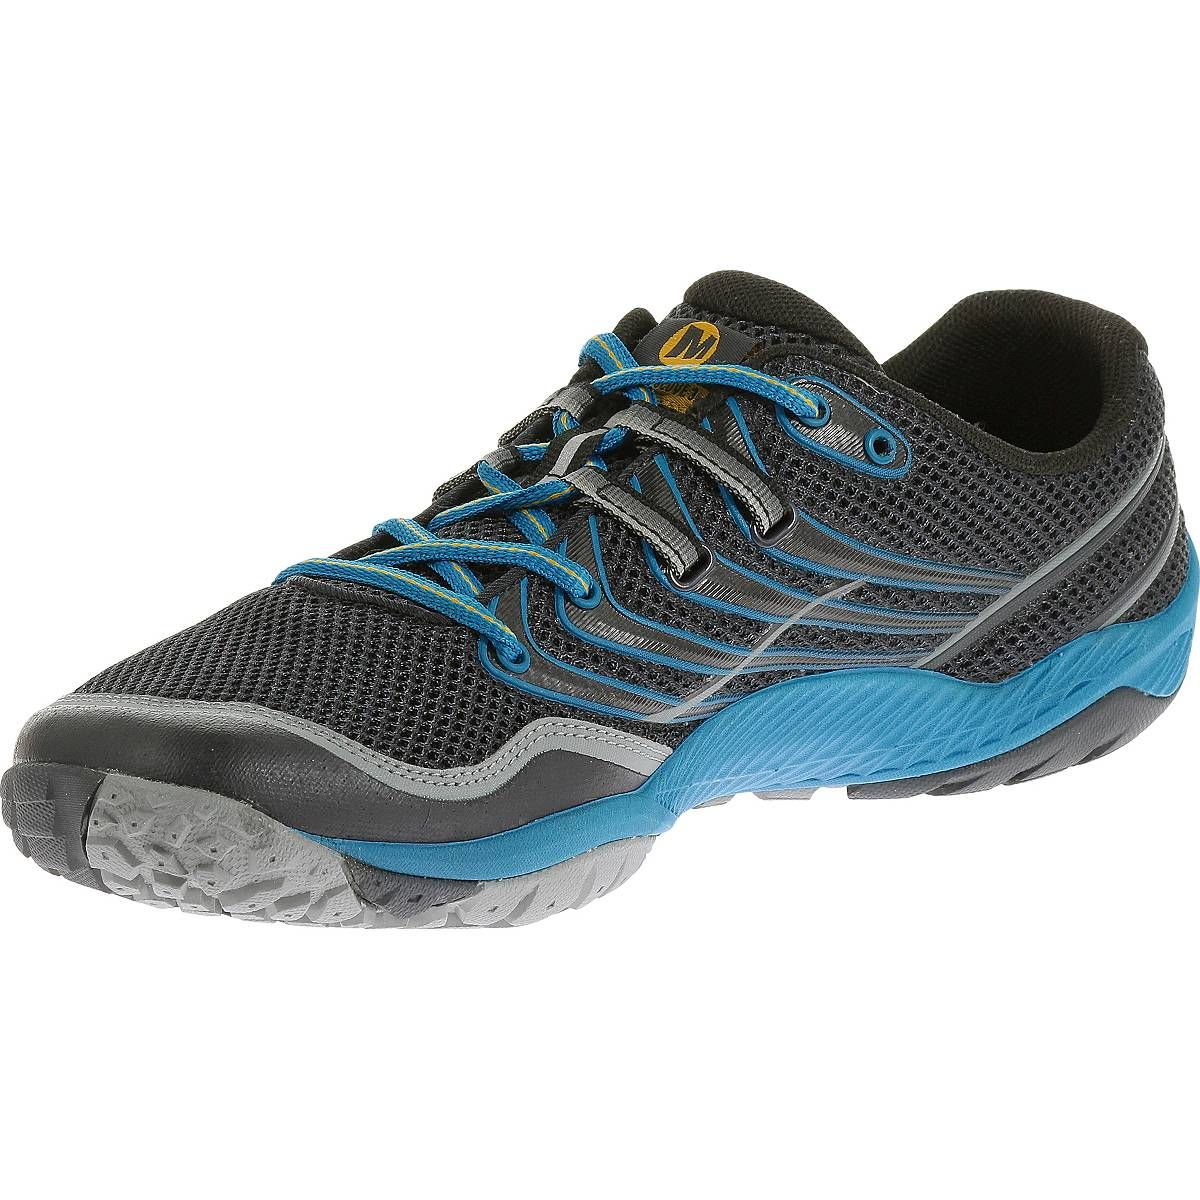 Lightweight Trail Running Shoes